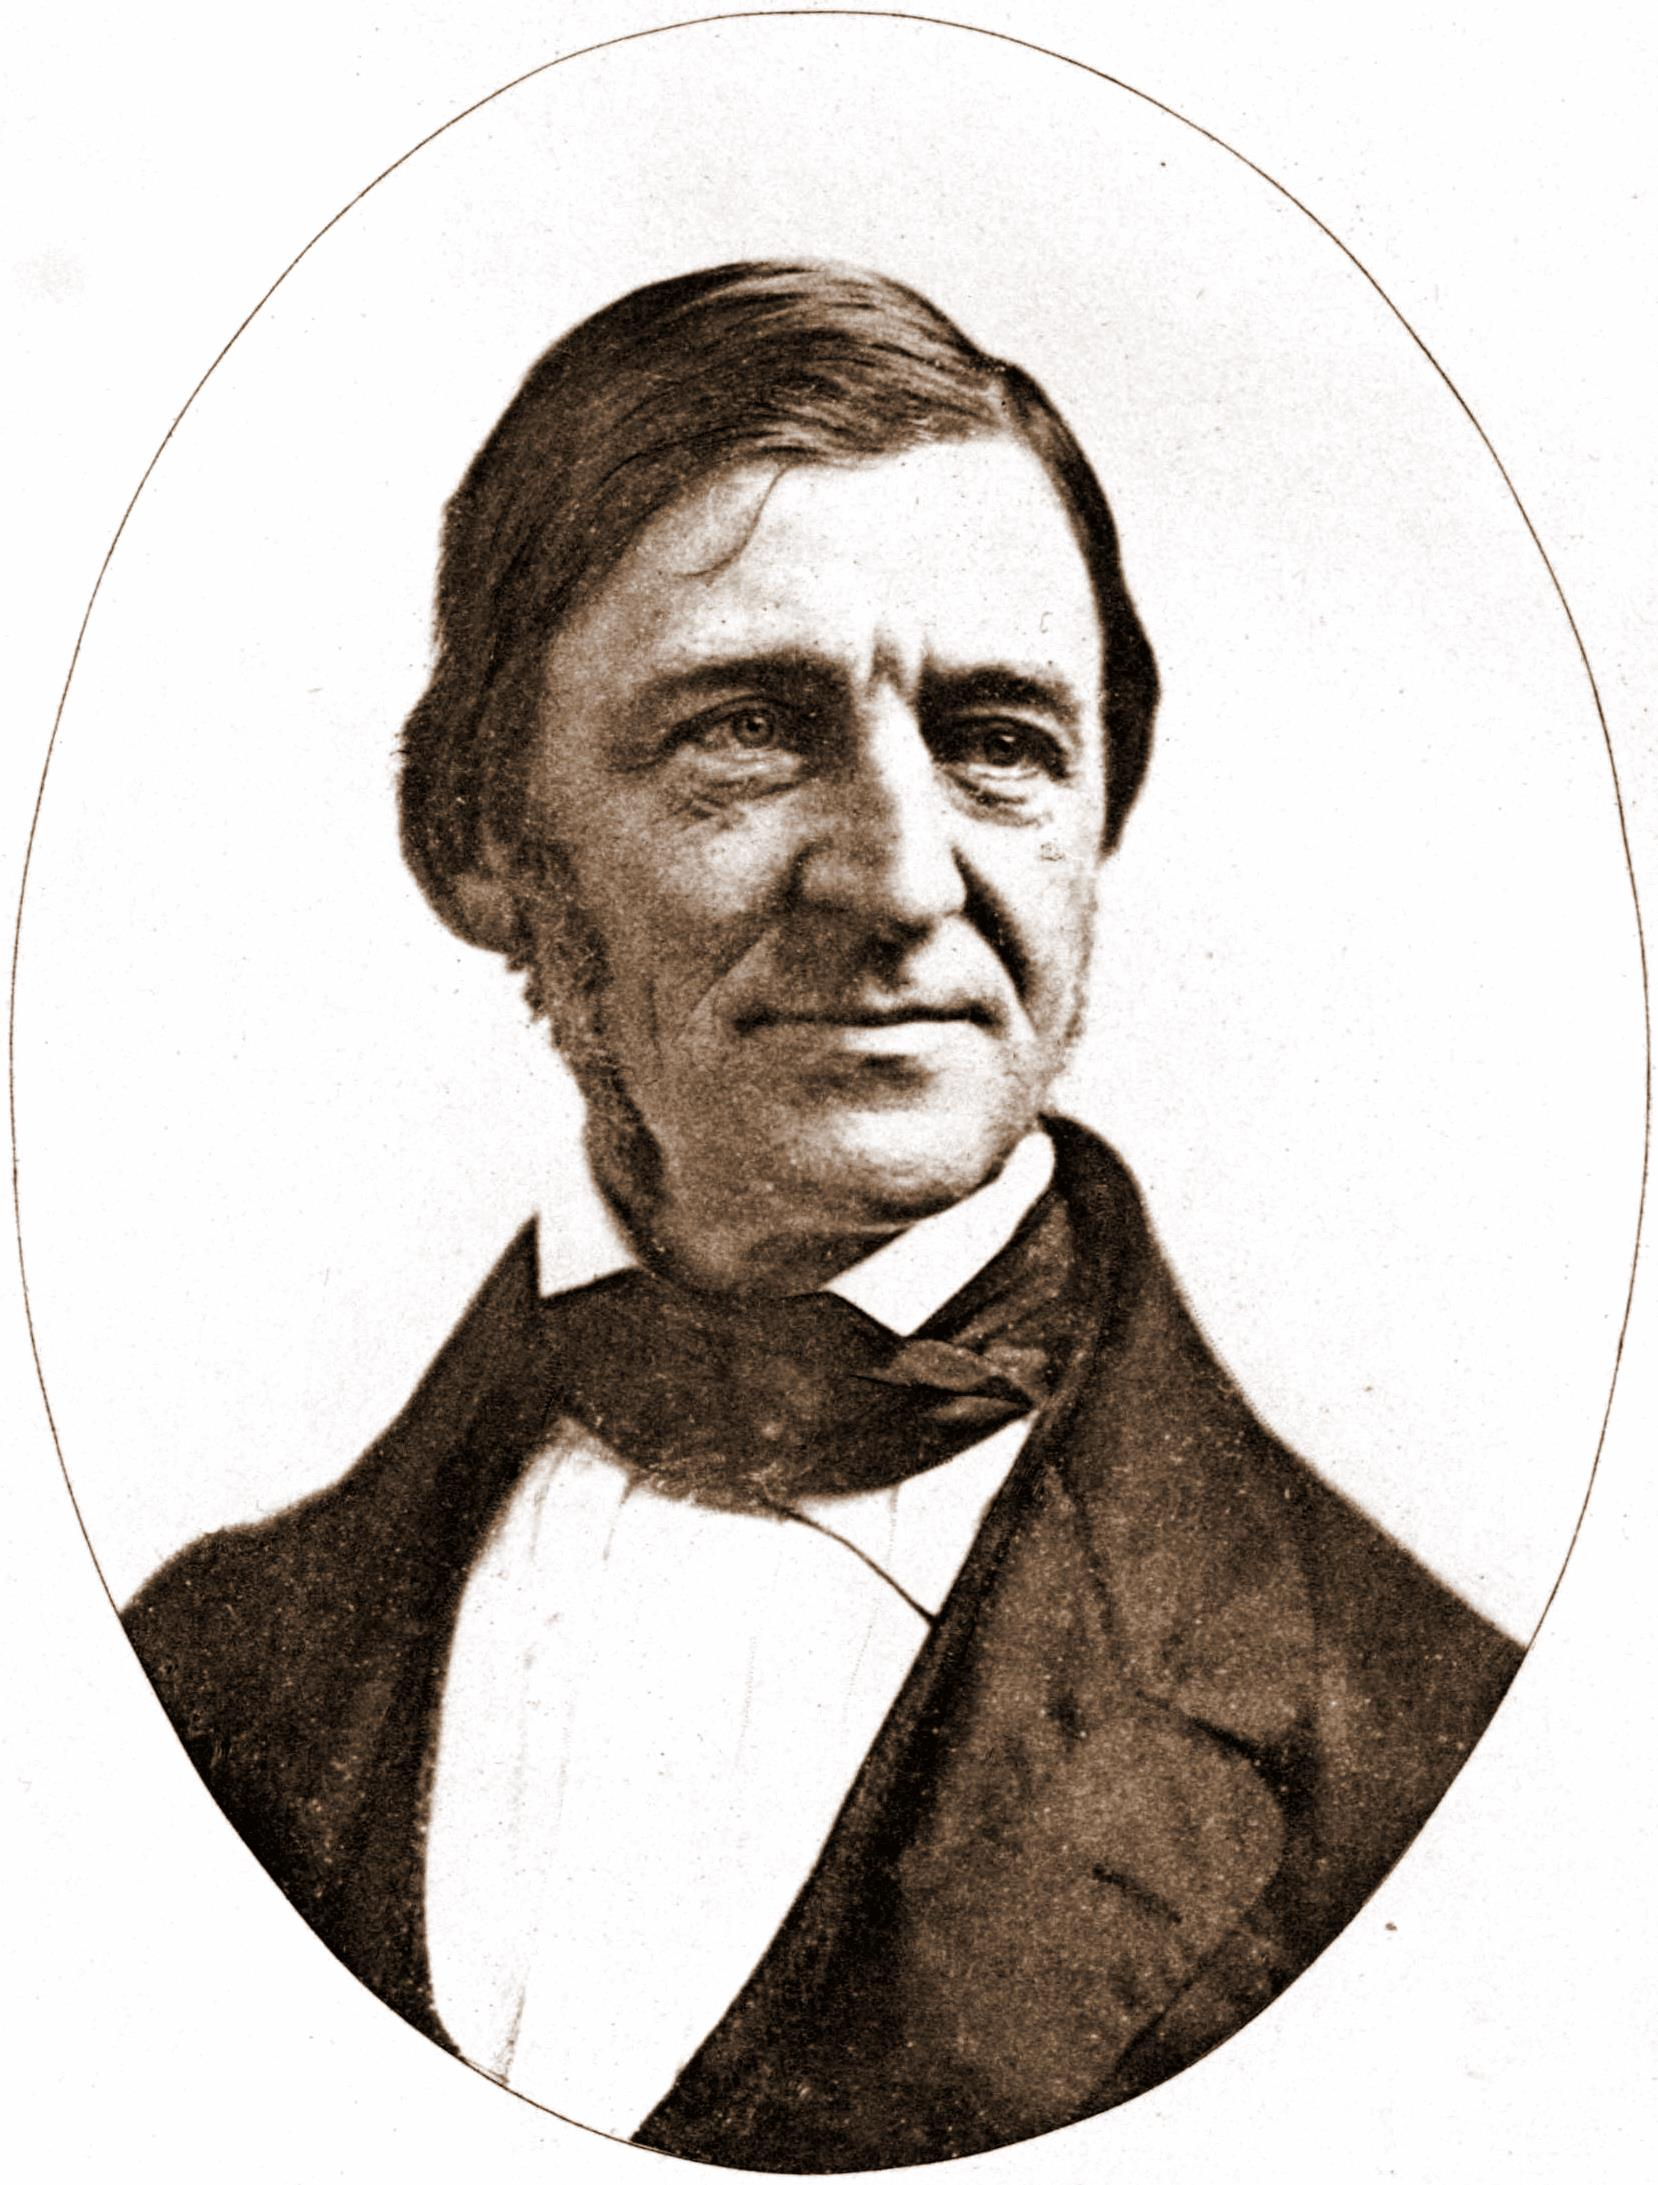 great american author series a political companion to ralph waldo emerson3 cropped